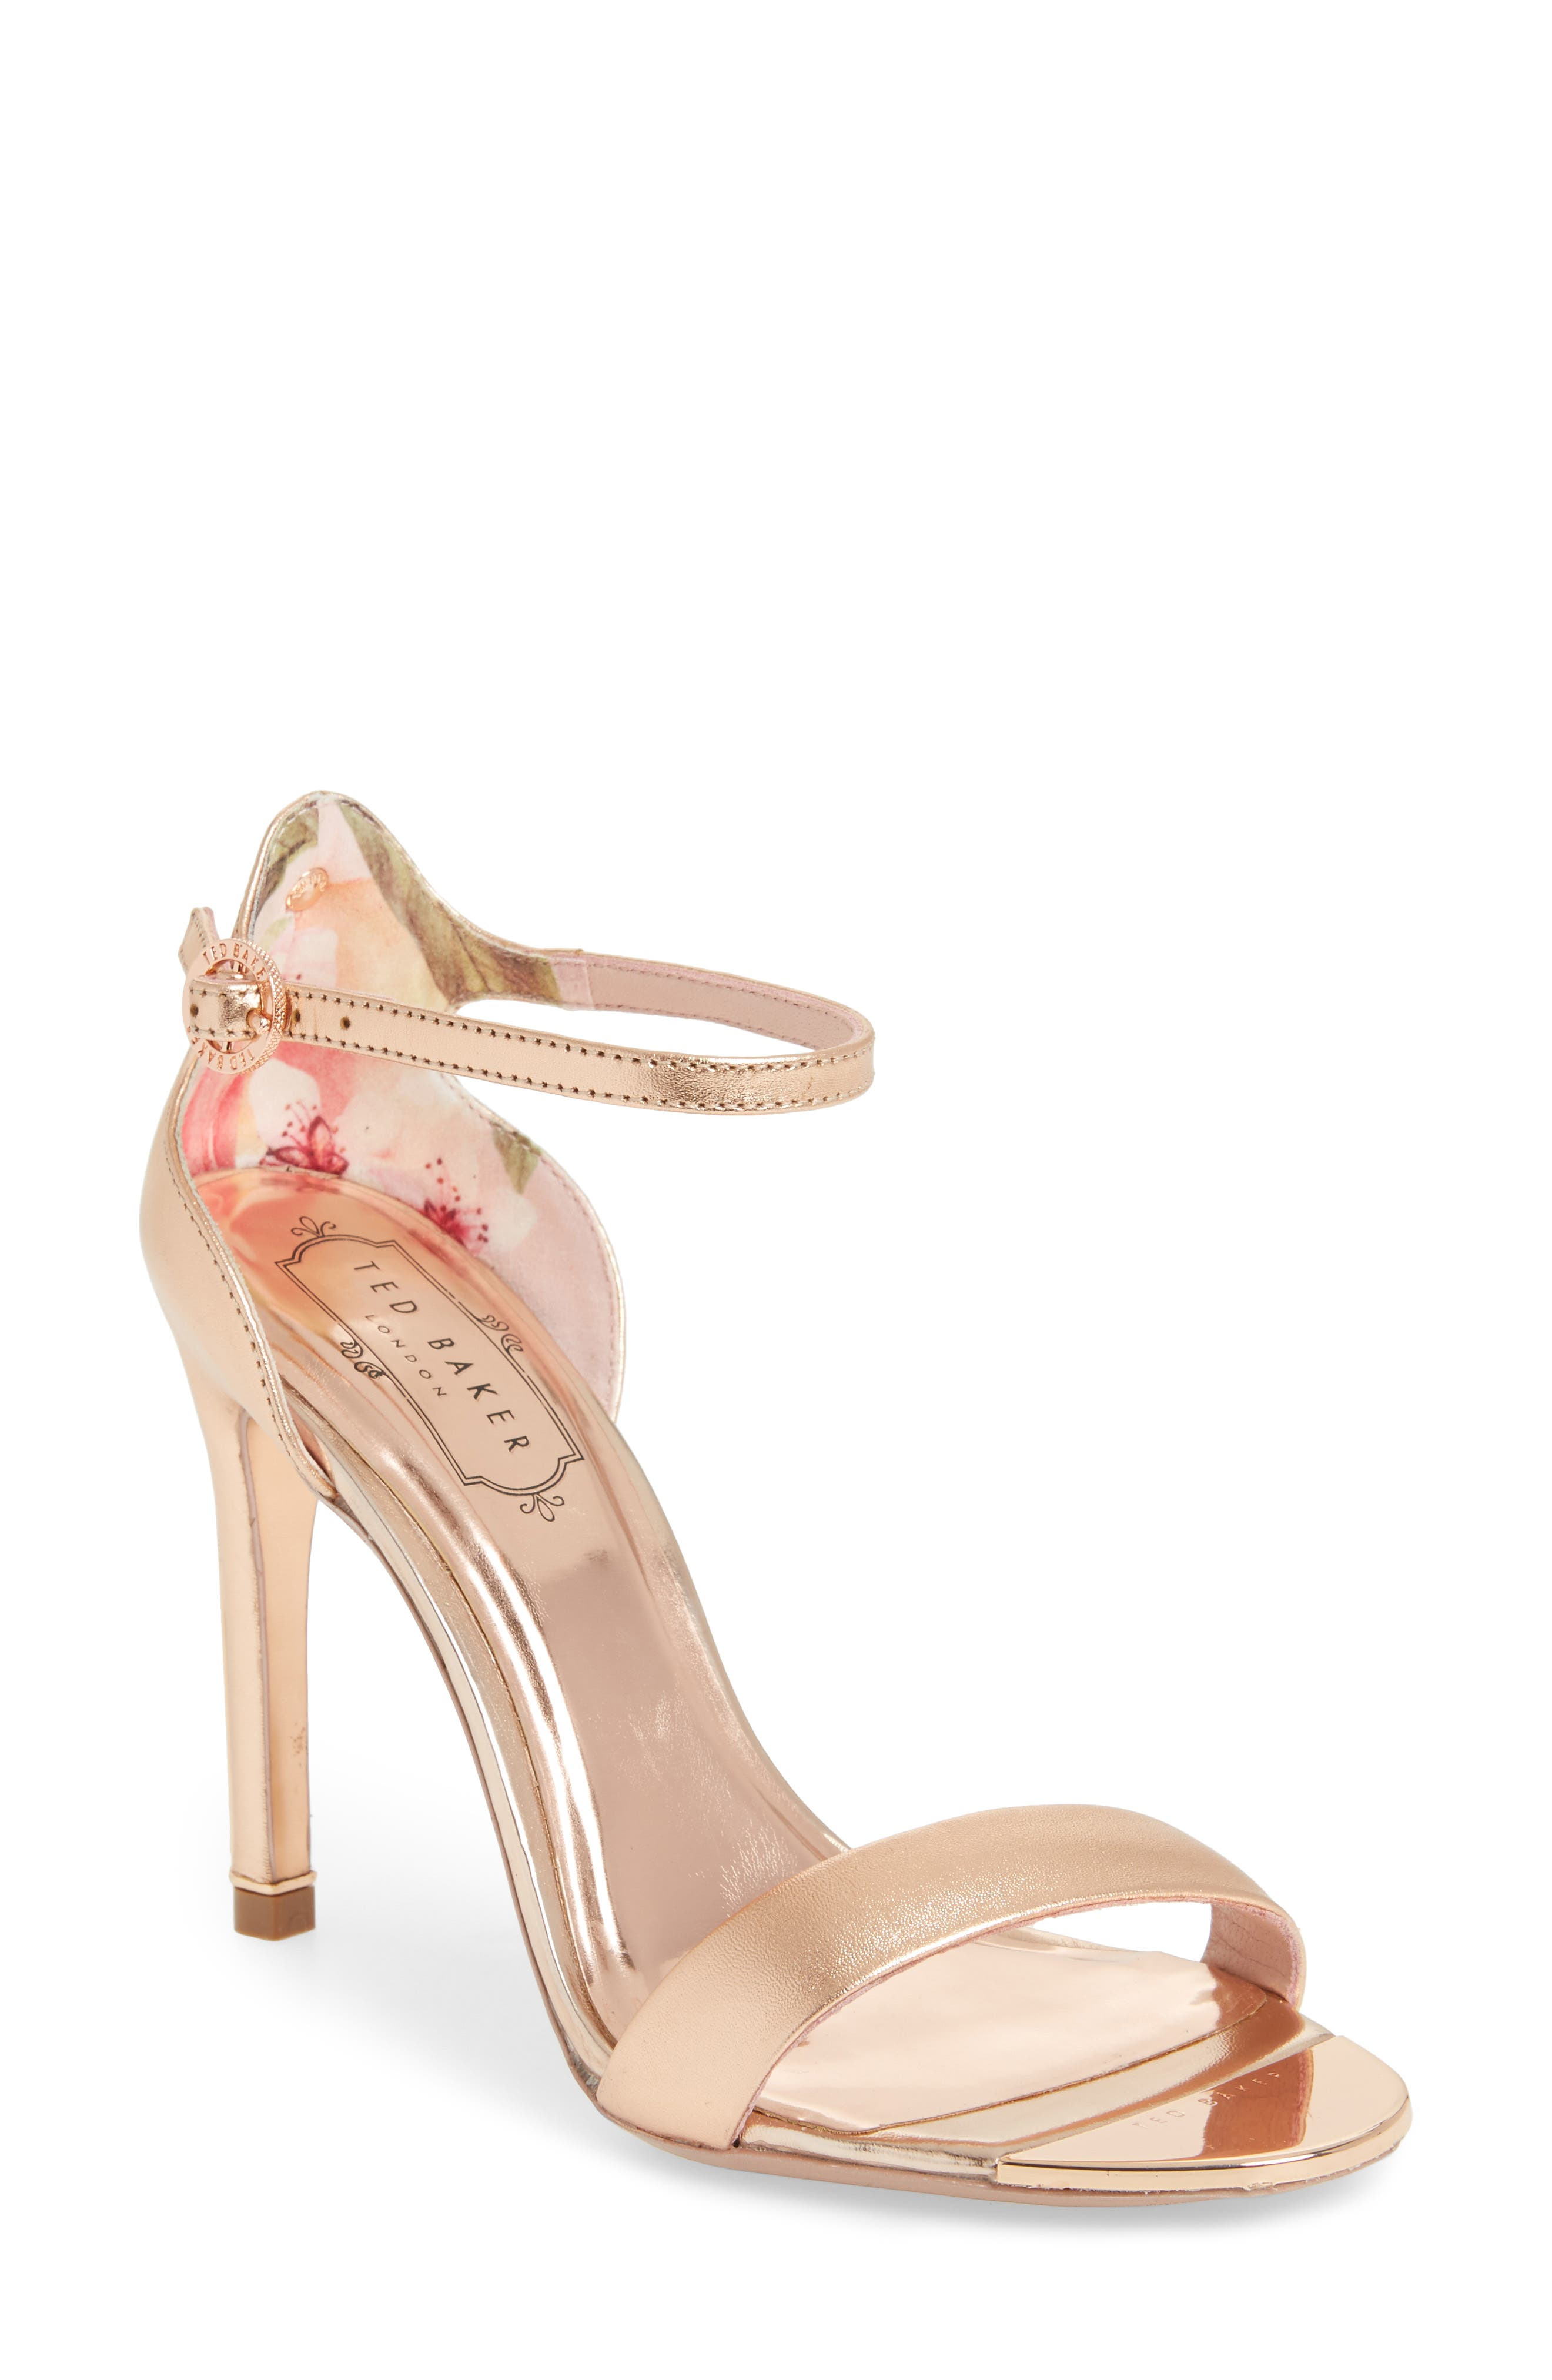 Sharlot Ankle Strap Sandal,                             Main thumbnail 1, color,                             Rose Gold Leather